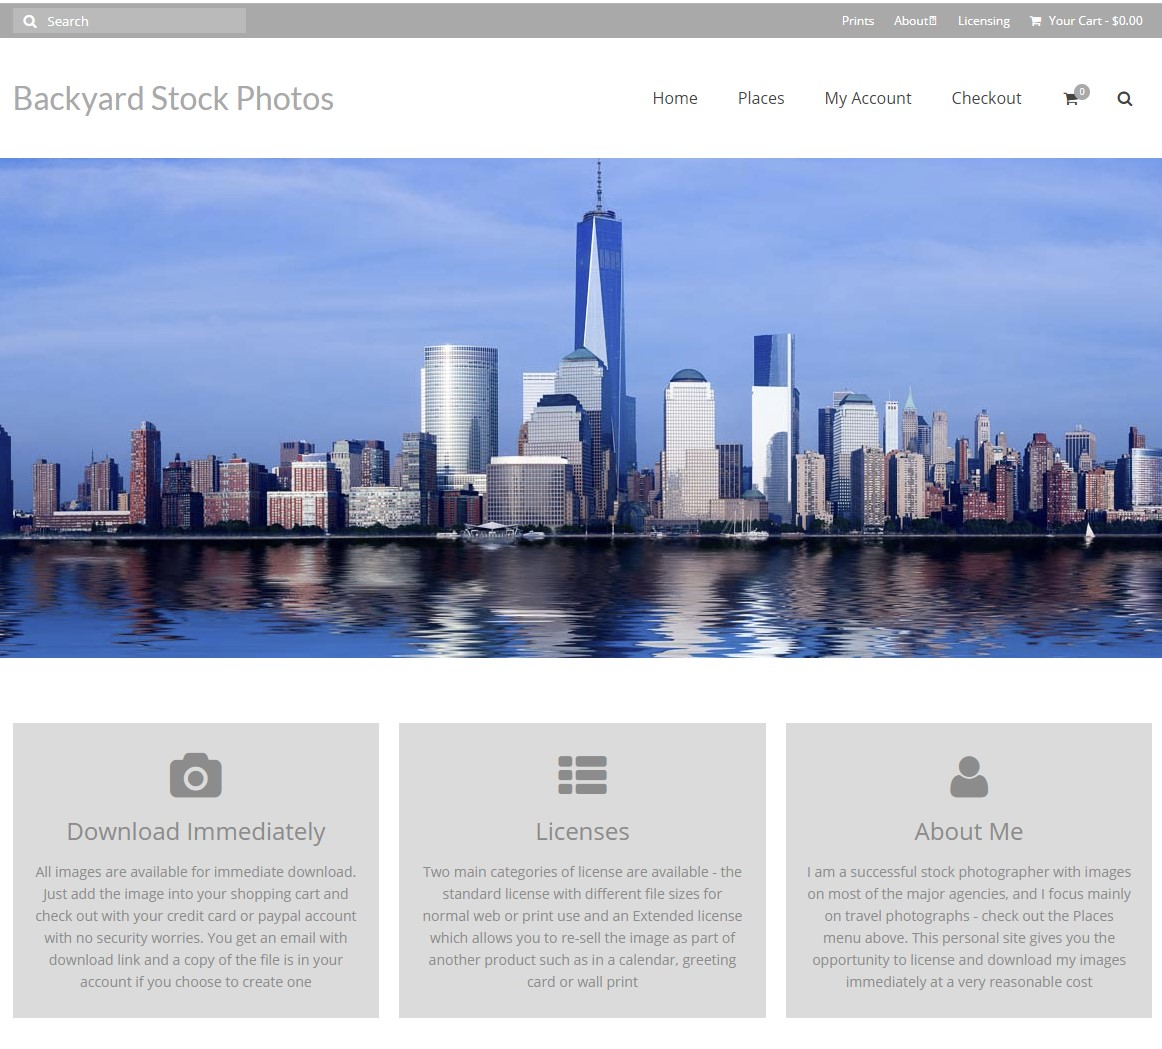 Can you make money selling your own images on your own stock agency